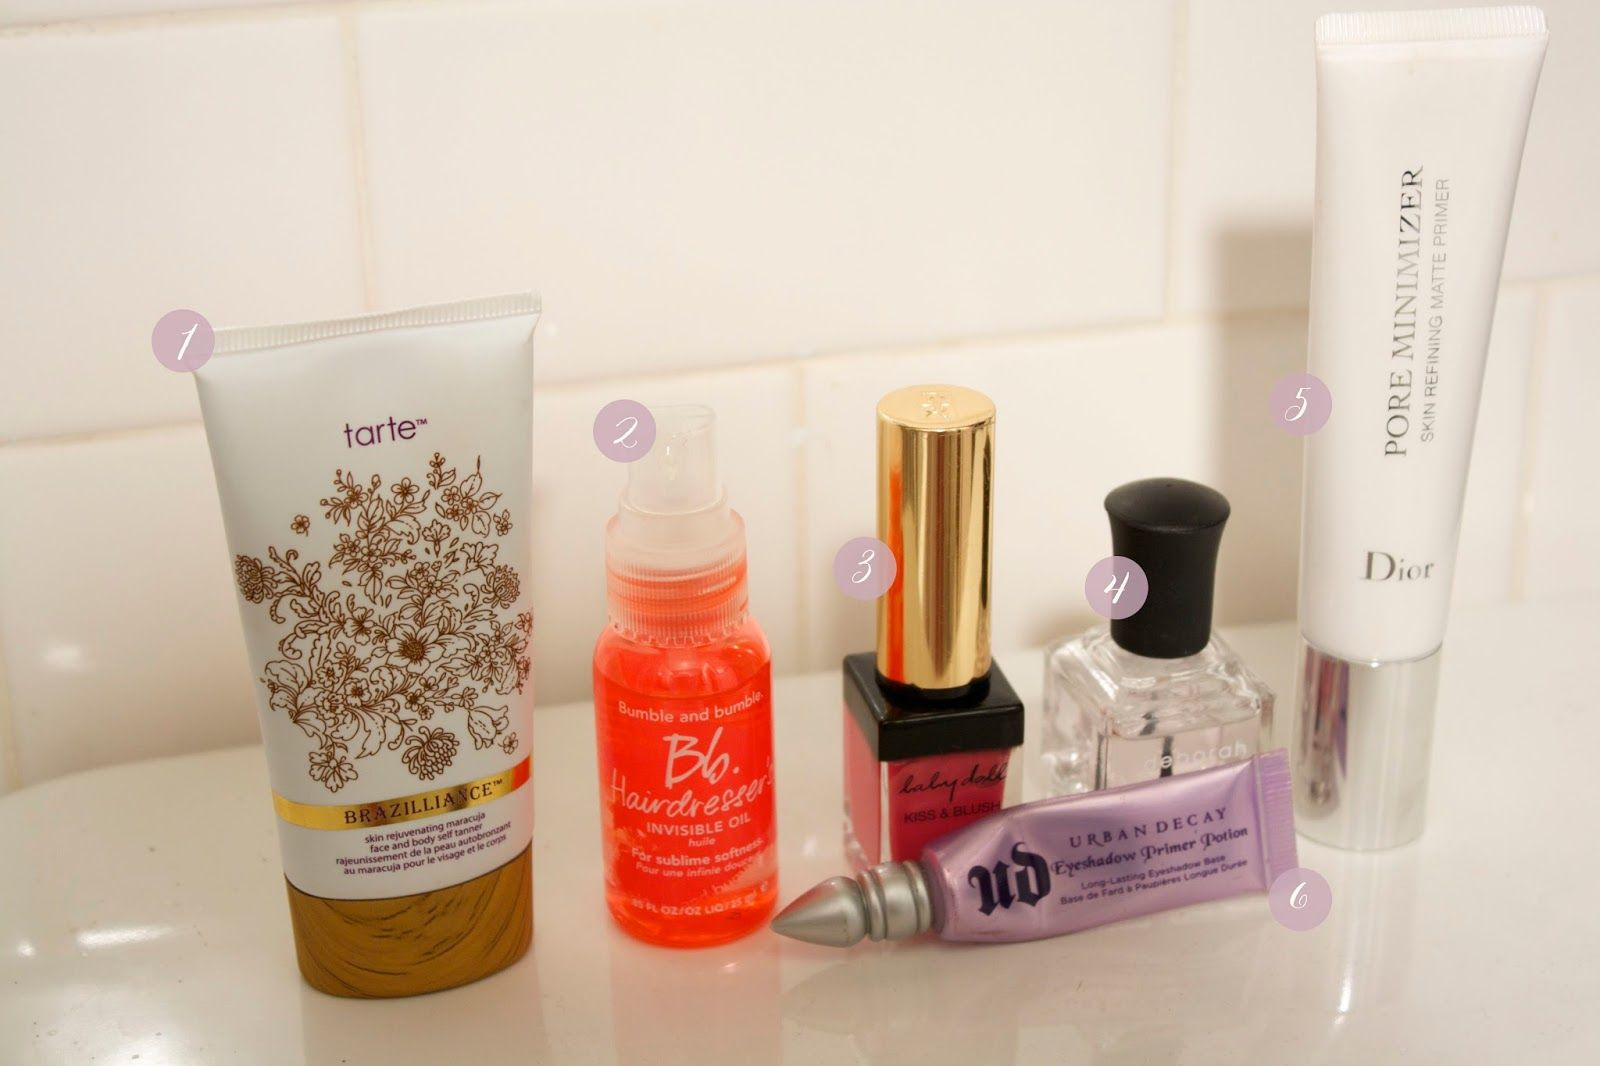 July Beauty Must-Haves; tarte self tanner, bumble and bumble invisible oil, ysl kiss and cheek, deborah lippman top coat, dior pore minimizer, urban decay eyeshadow primer